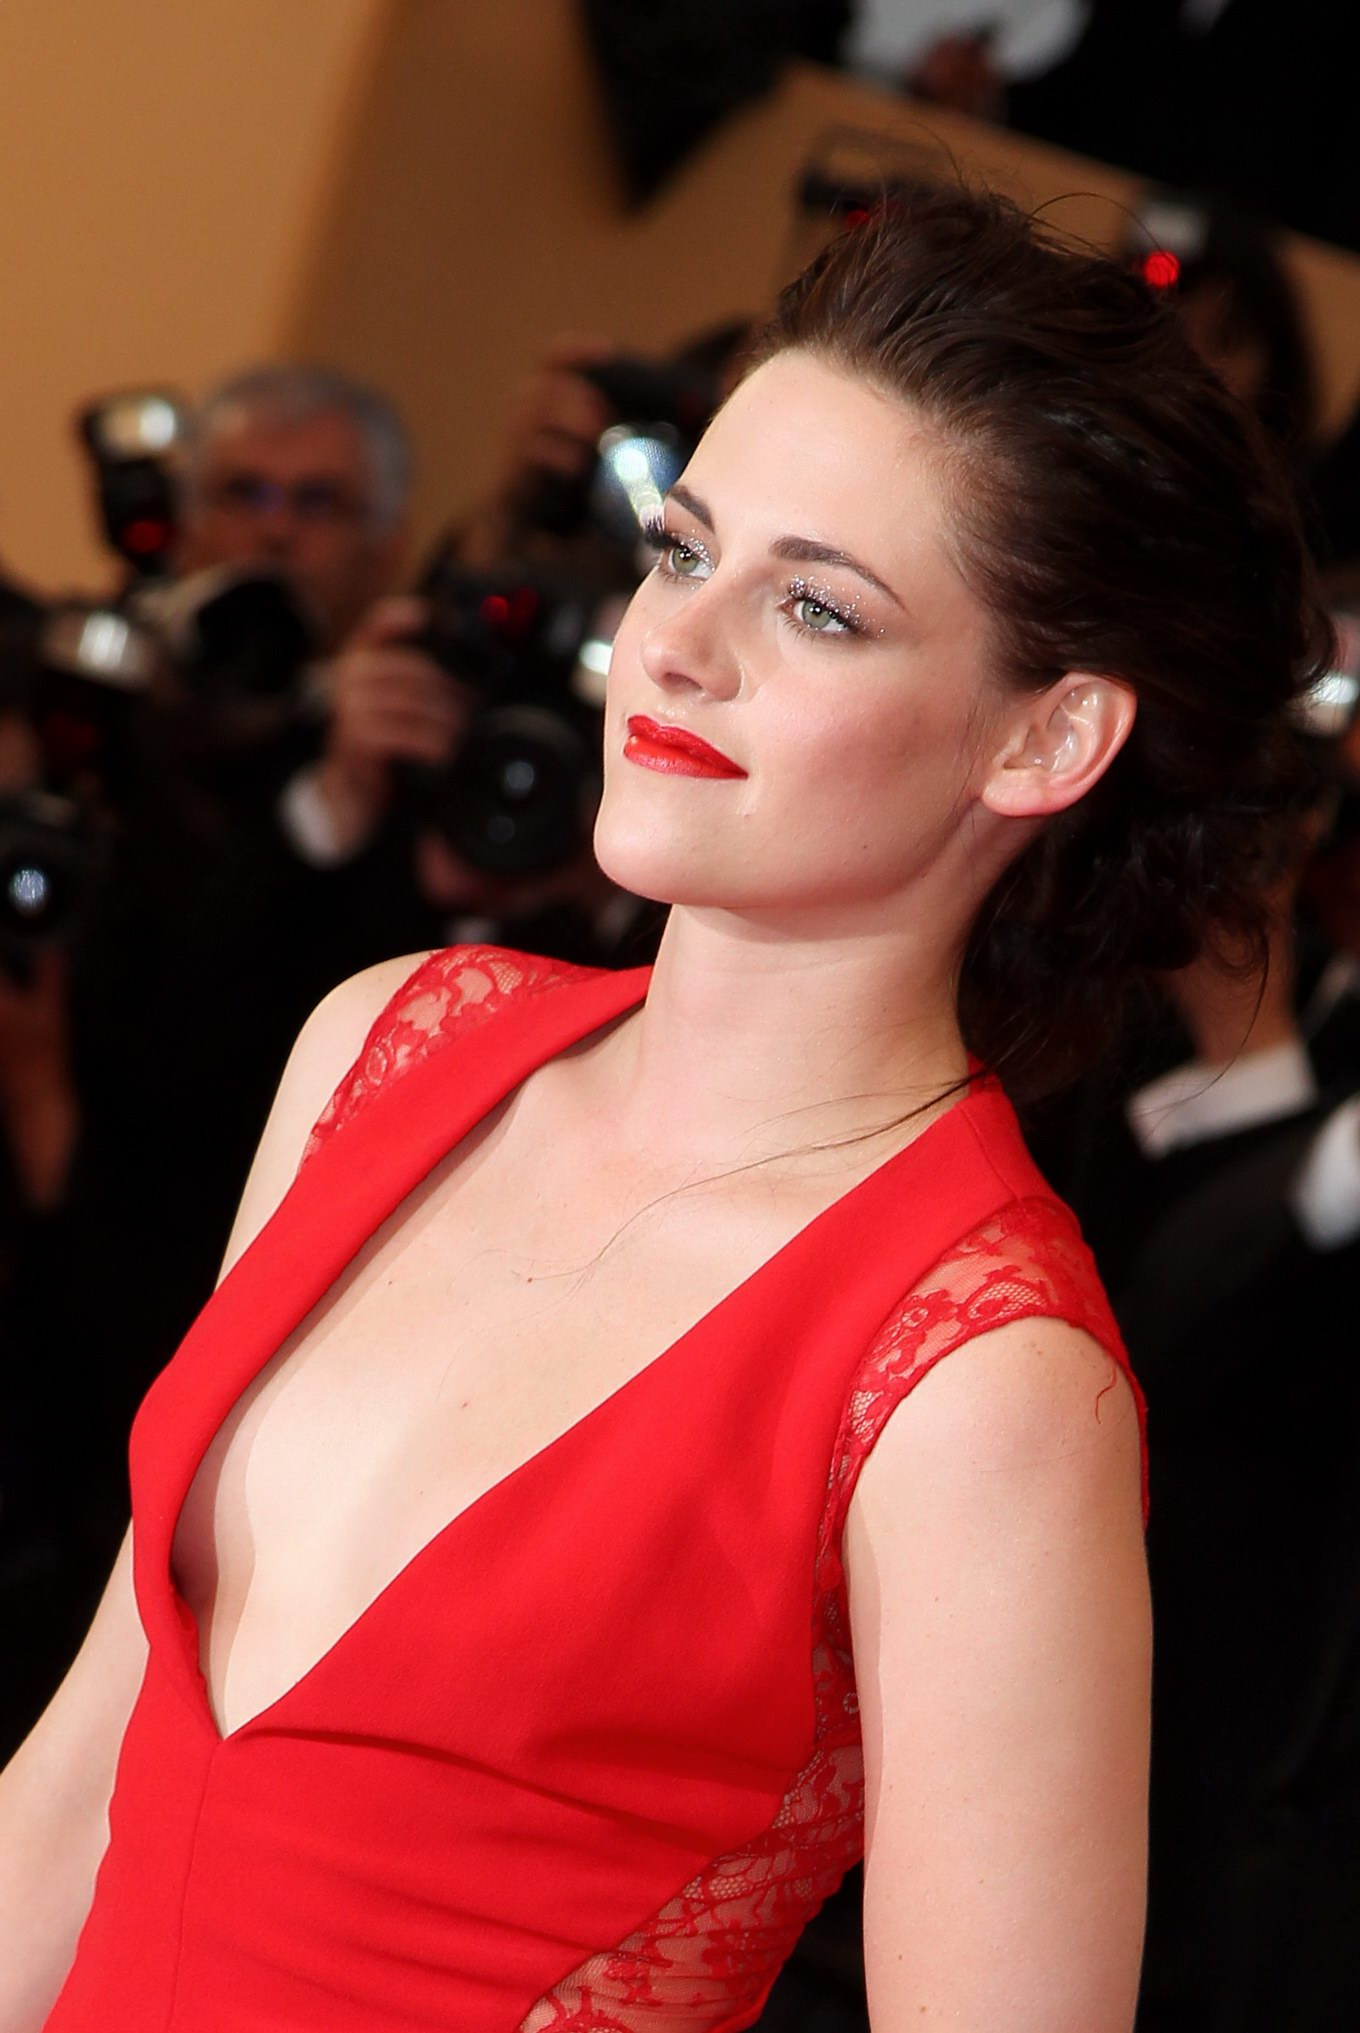 Kristen stewart braless shows awesome cleavage at for The stewarts